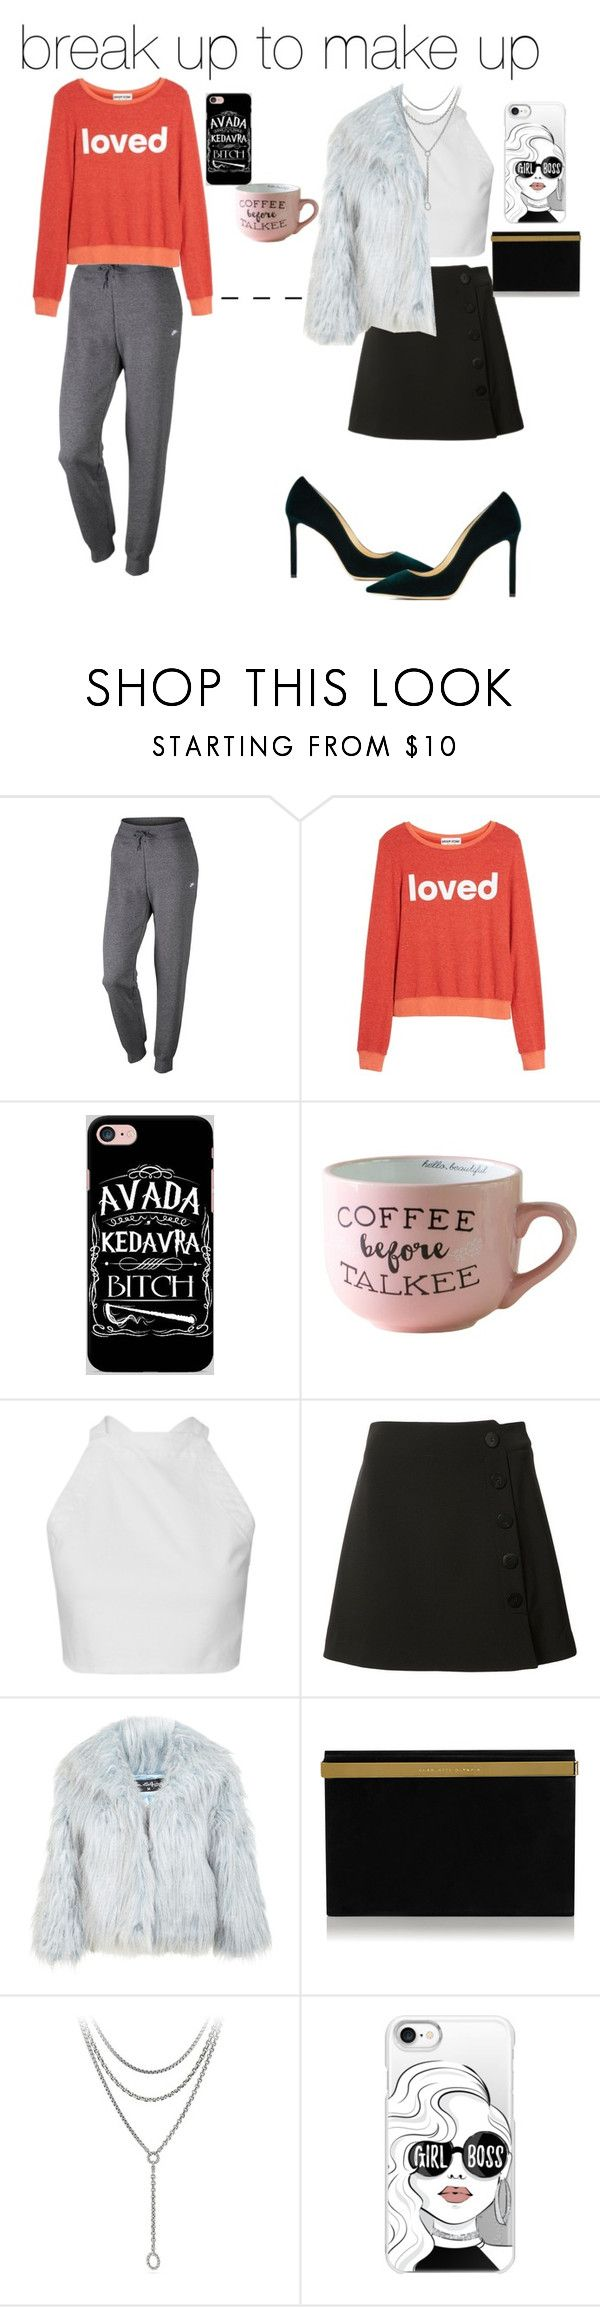 """Break up to make up"" by rmorrill on Polyvore featuring NIKE, Dream Scene, Samsung, Misha Nonoo, Miss Selfridge, Jimmy Choo, David Yurman and Casetify"